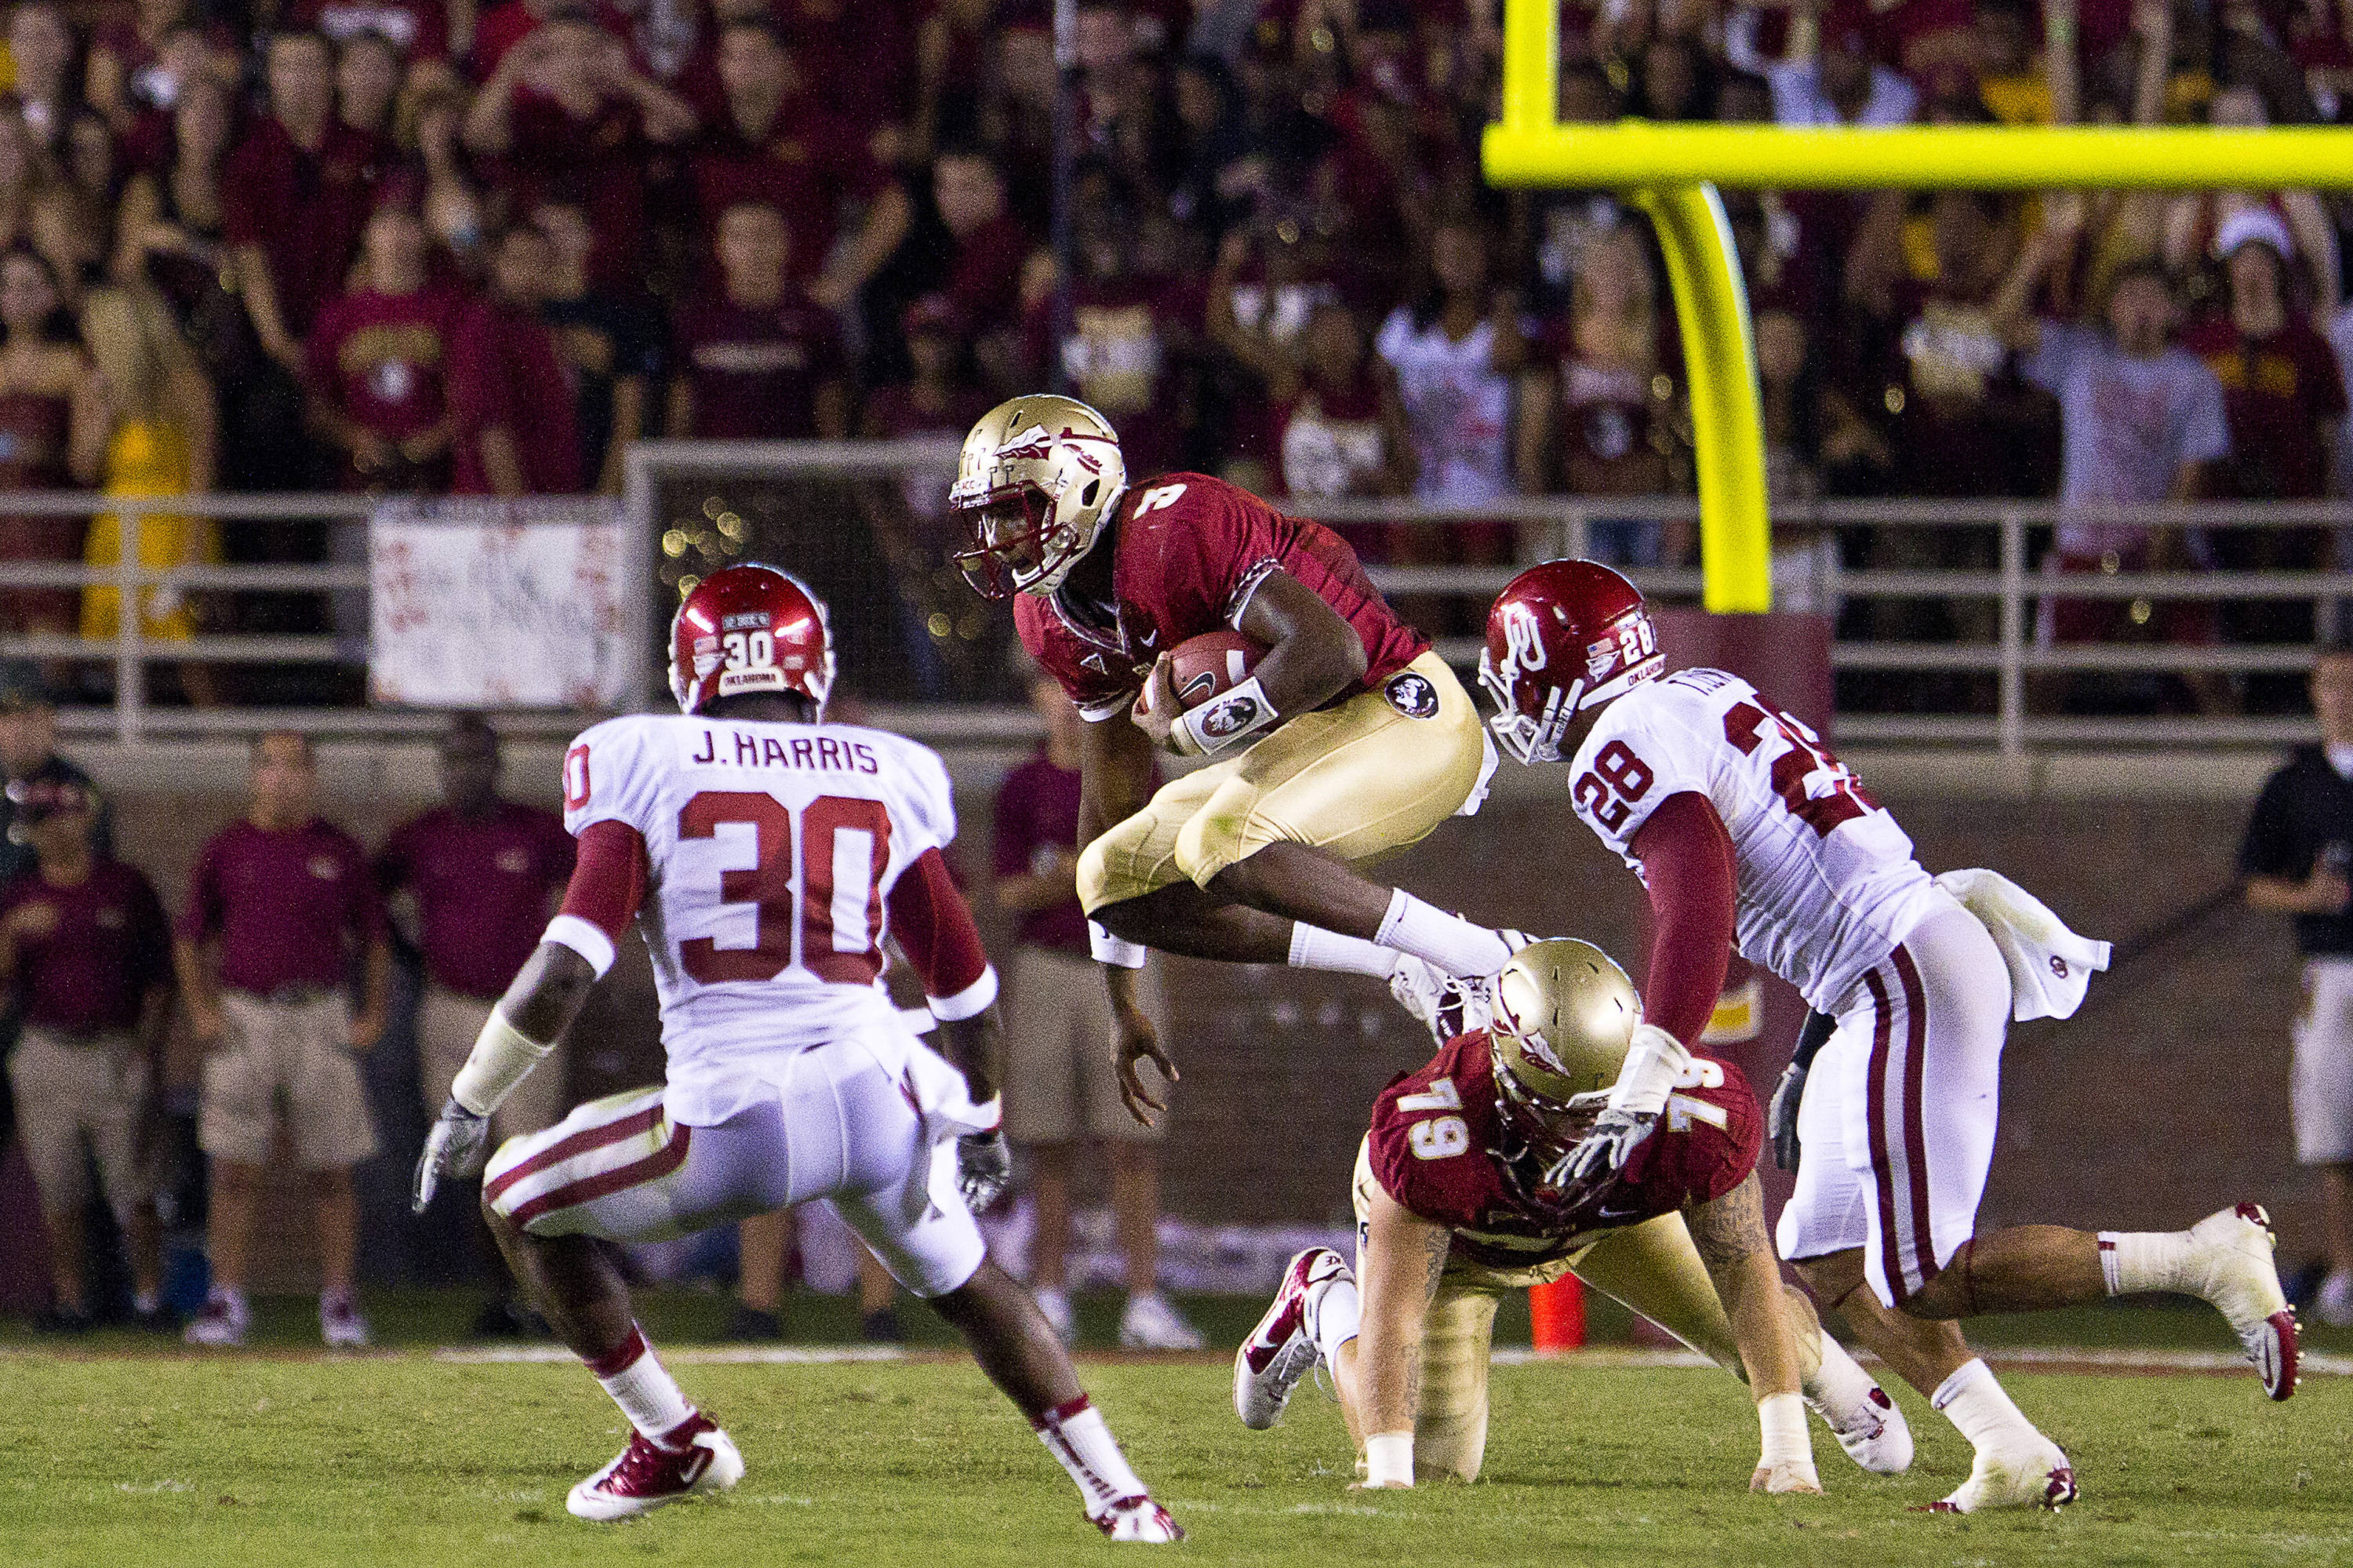 EJ Manuel (3) avoids defenders and a fallen teammate during the game against Oklahoma on September 17, 2011.